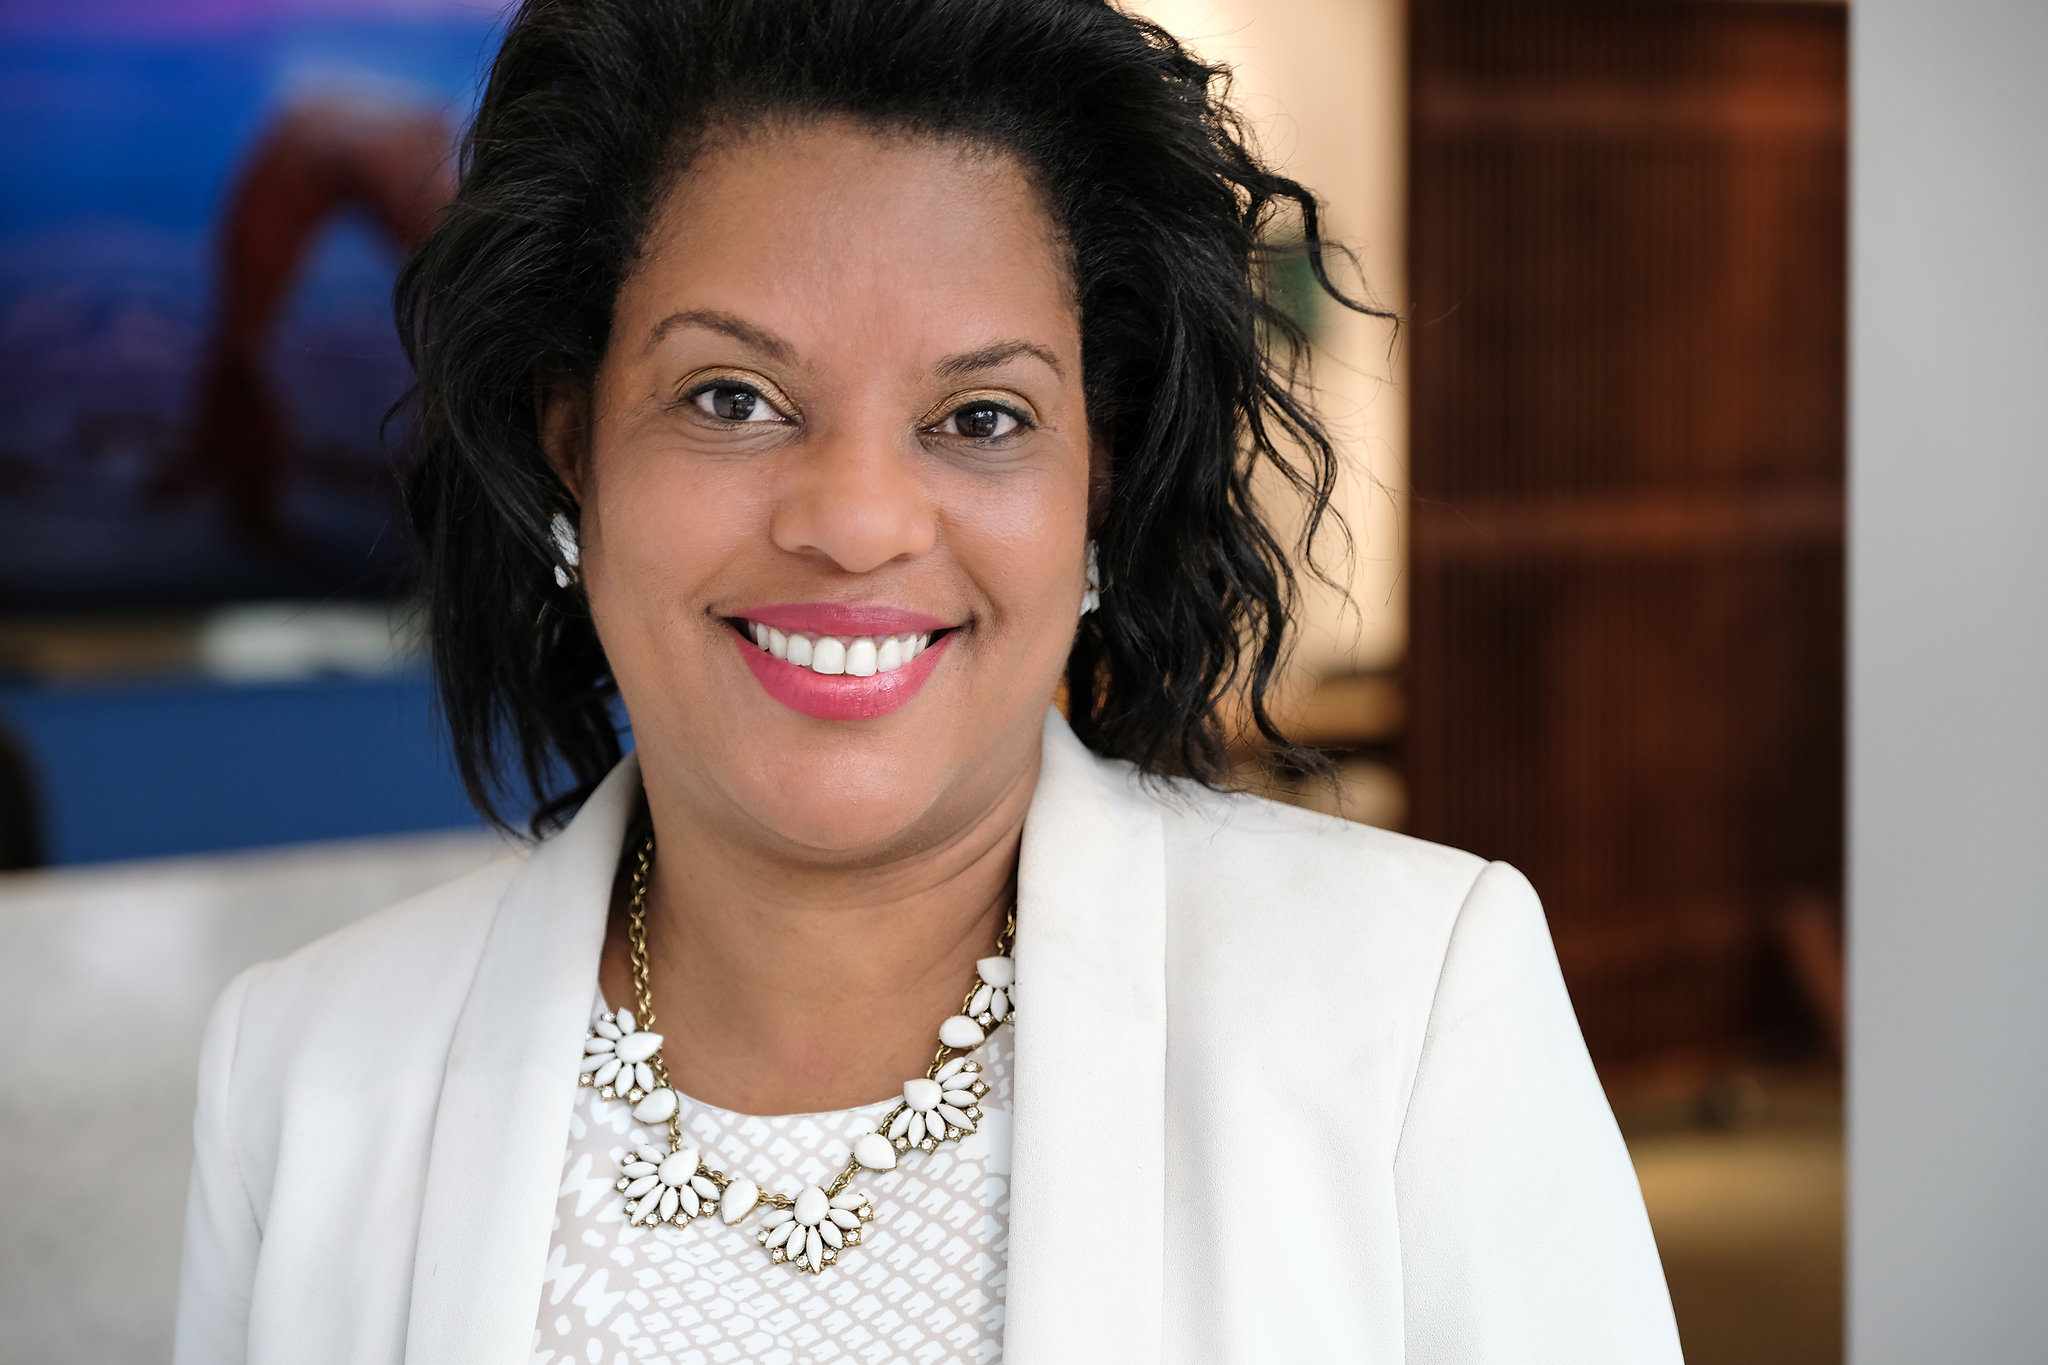 ABOUT - Deirdre P. Brown, J.D., is the President of Lexicon Title.  She is licensed to provide title and escrow services in the District of Columbia, Maryland and Virginia.Deirdre Brown is a 3rd generation Washingtonian and has watched the District of Columbia transform and grow into the diverse and vibrant city that it is today.Deirdre has worked in the real estate industry for over 15 years as a Realtor and as a title professional. She is an active member of the Greater Capital Area Association of Realtors (GCAAR). She sits on GCAAR's Grievance Committe and has sat on its Education Committee and Professional Development Sub-Committee. She also teaches continuing education classes at GCAAR locations. She is an active member of the District of Columbia's Association of Realtors (DCAR) and has served as the Chair of its Public Policy Committee.Deirdre is an active member in the community has served as ANC Commissioner in 3F04 and is a member of the Metropolitian Women's Demoratic Club.Deirdre received her Bachelor of Science degree from the University of Maryland, University College and her Juris Doctor degree from the University of the District of Columbia, David A. Clarke School of Law.Deirdre is a long time resident of the District of Columbia where she is the typical soccer mom. She has three daughters and two sons all of whom attended and/or attend public and independent schools in the District of Columbia.